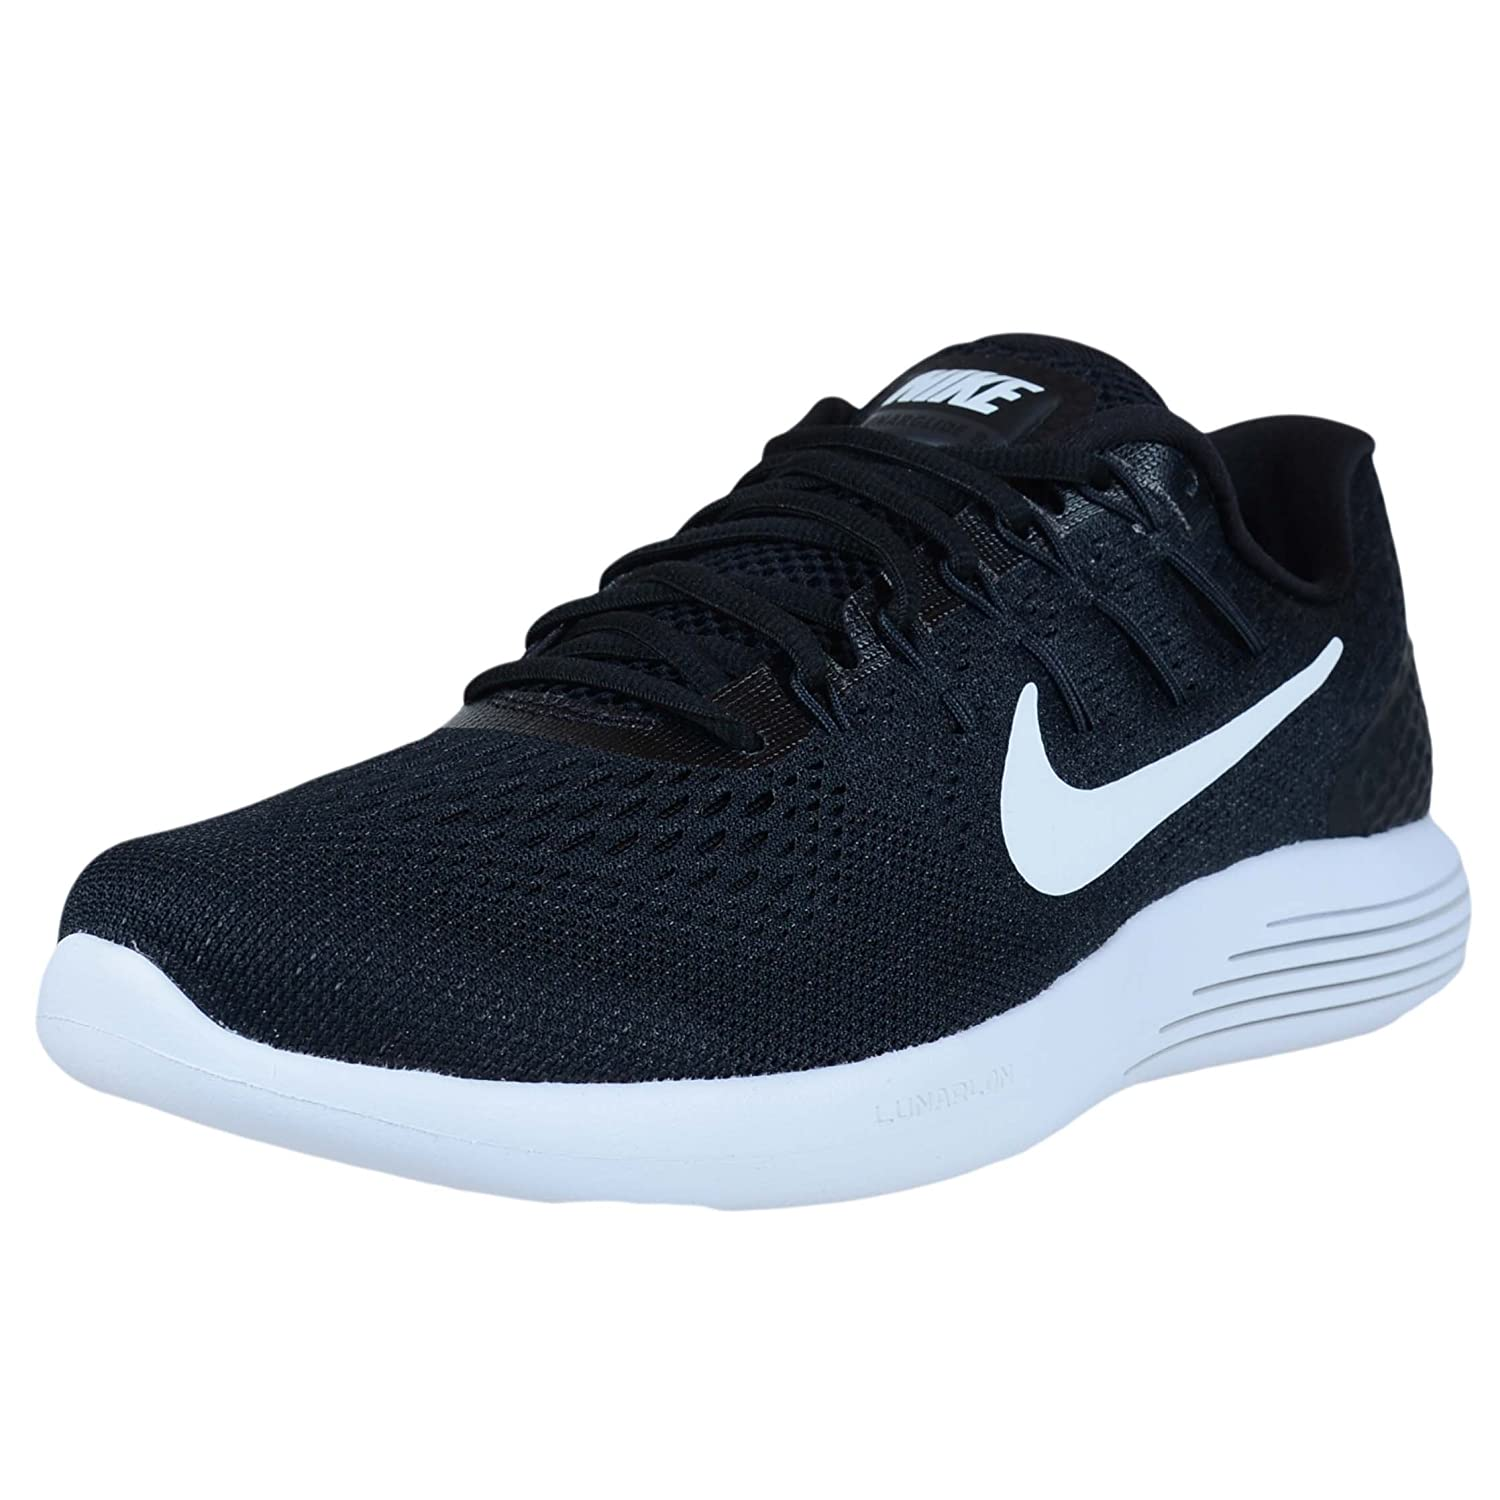 NIKE Women's Lunarglide 9 Running Shoe B0767XHKYJ 10 B(M) US|Black/White/Anthracite